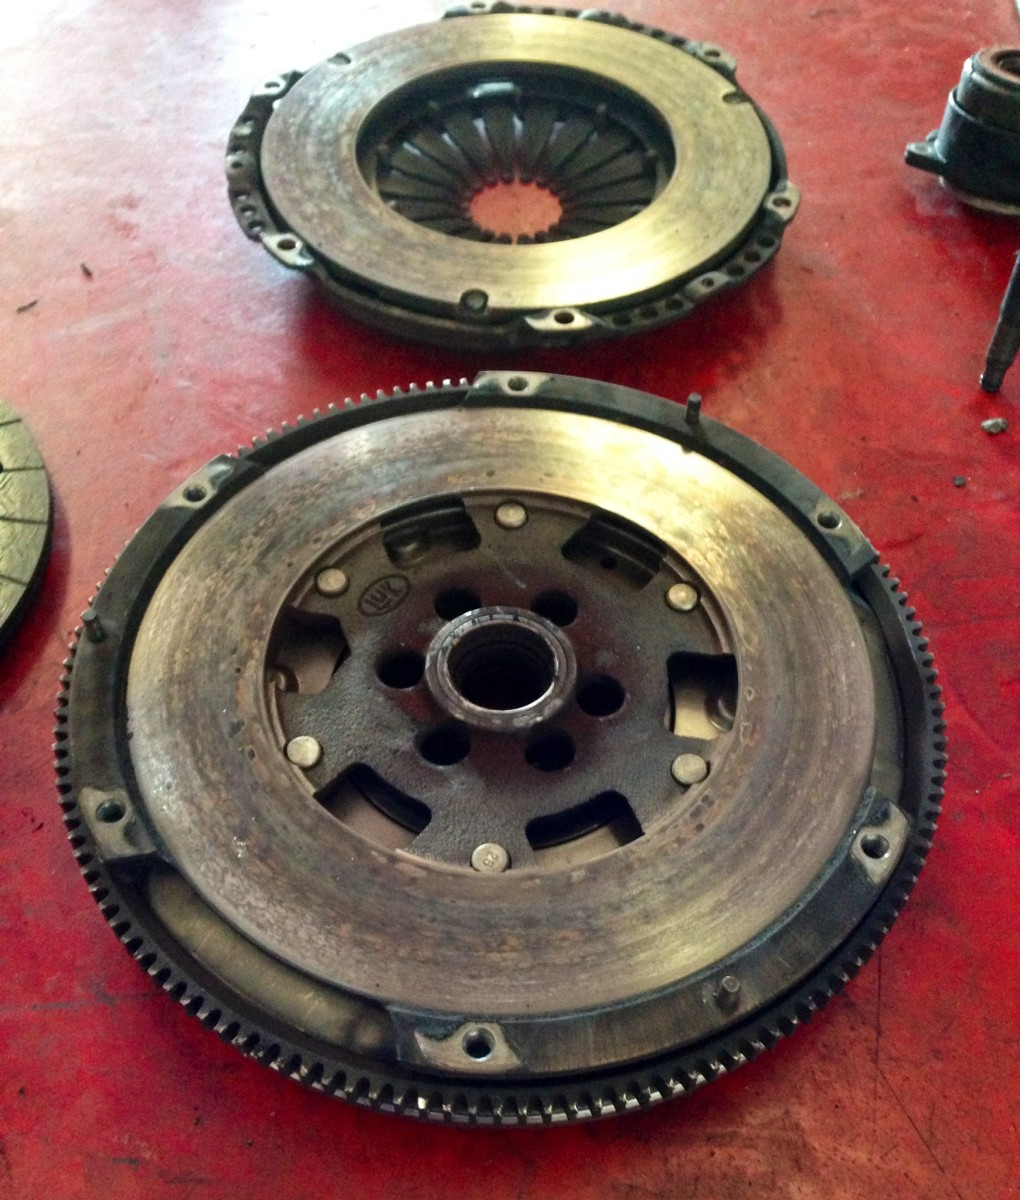 """This 13-year-old Dual Mass Flywheel had 133,000 miles too (but was laid to rest when replacing an original clutch).  Erratic idles, audible """"rattling,"""" and knocking when pressing or lifting the gas pedal can indicate a worn DMF."""